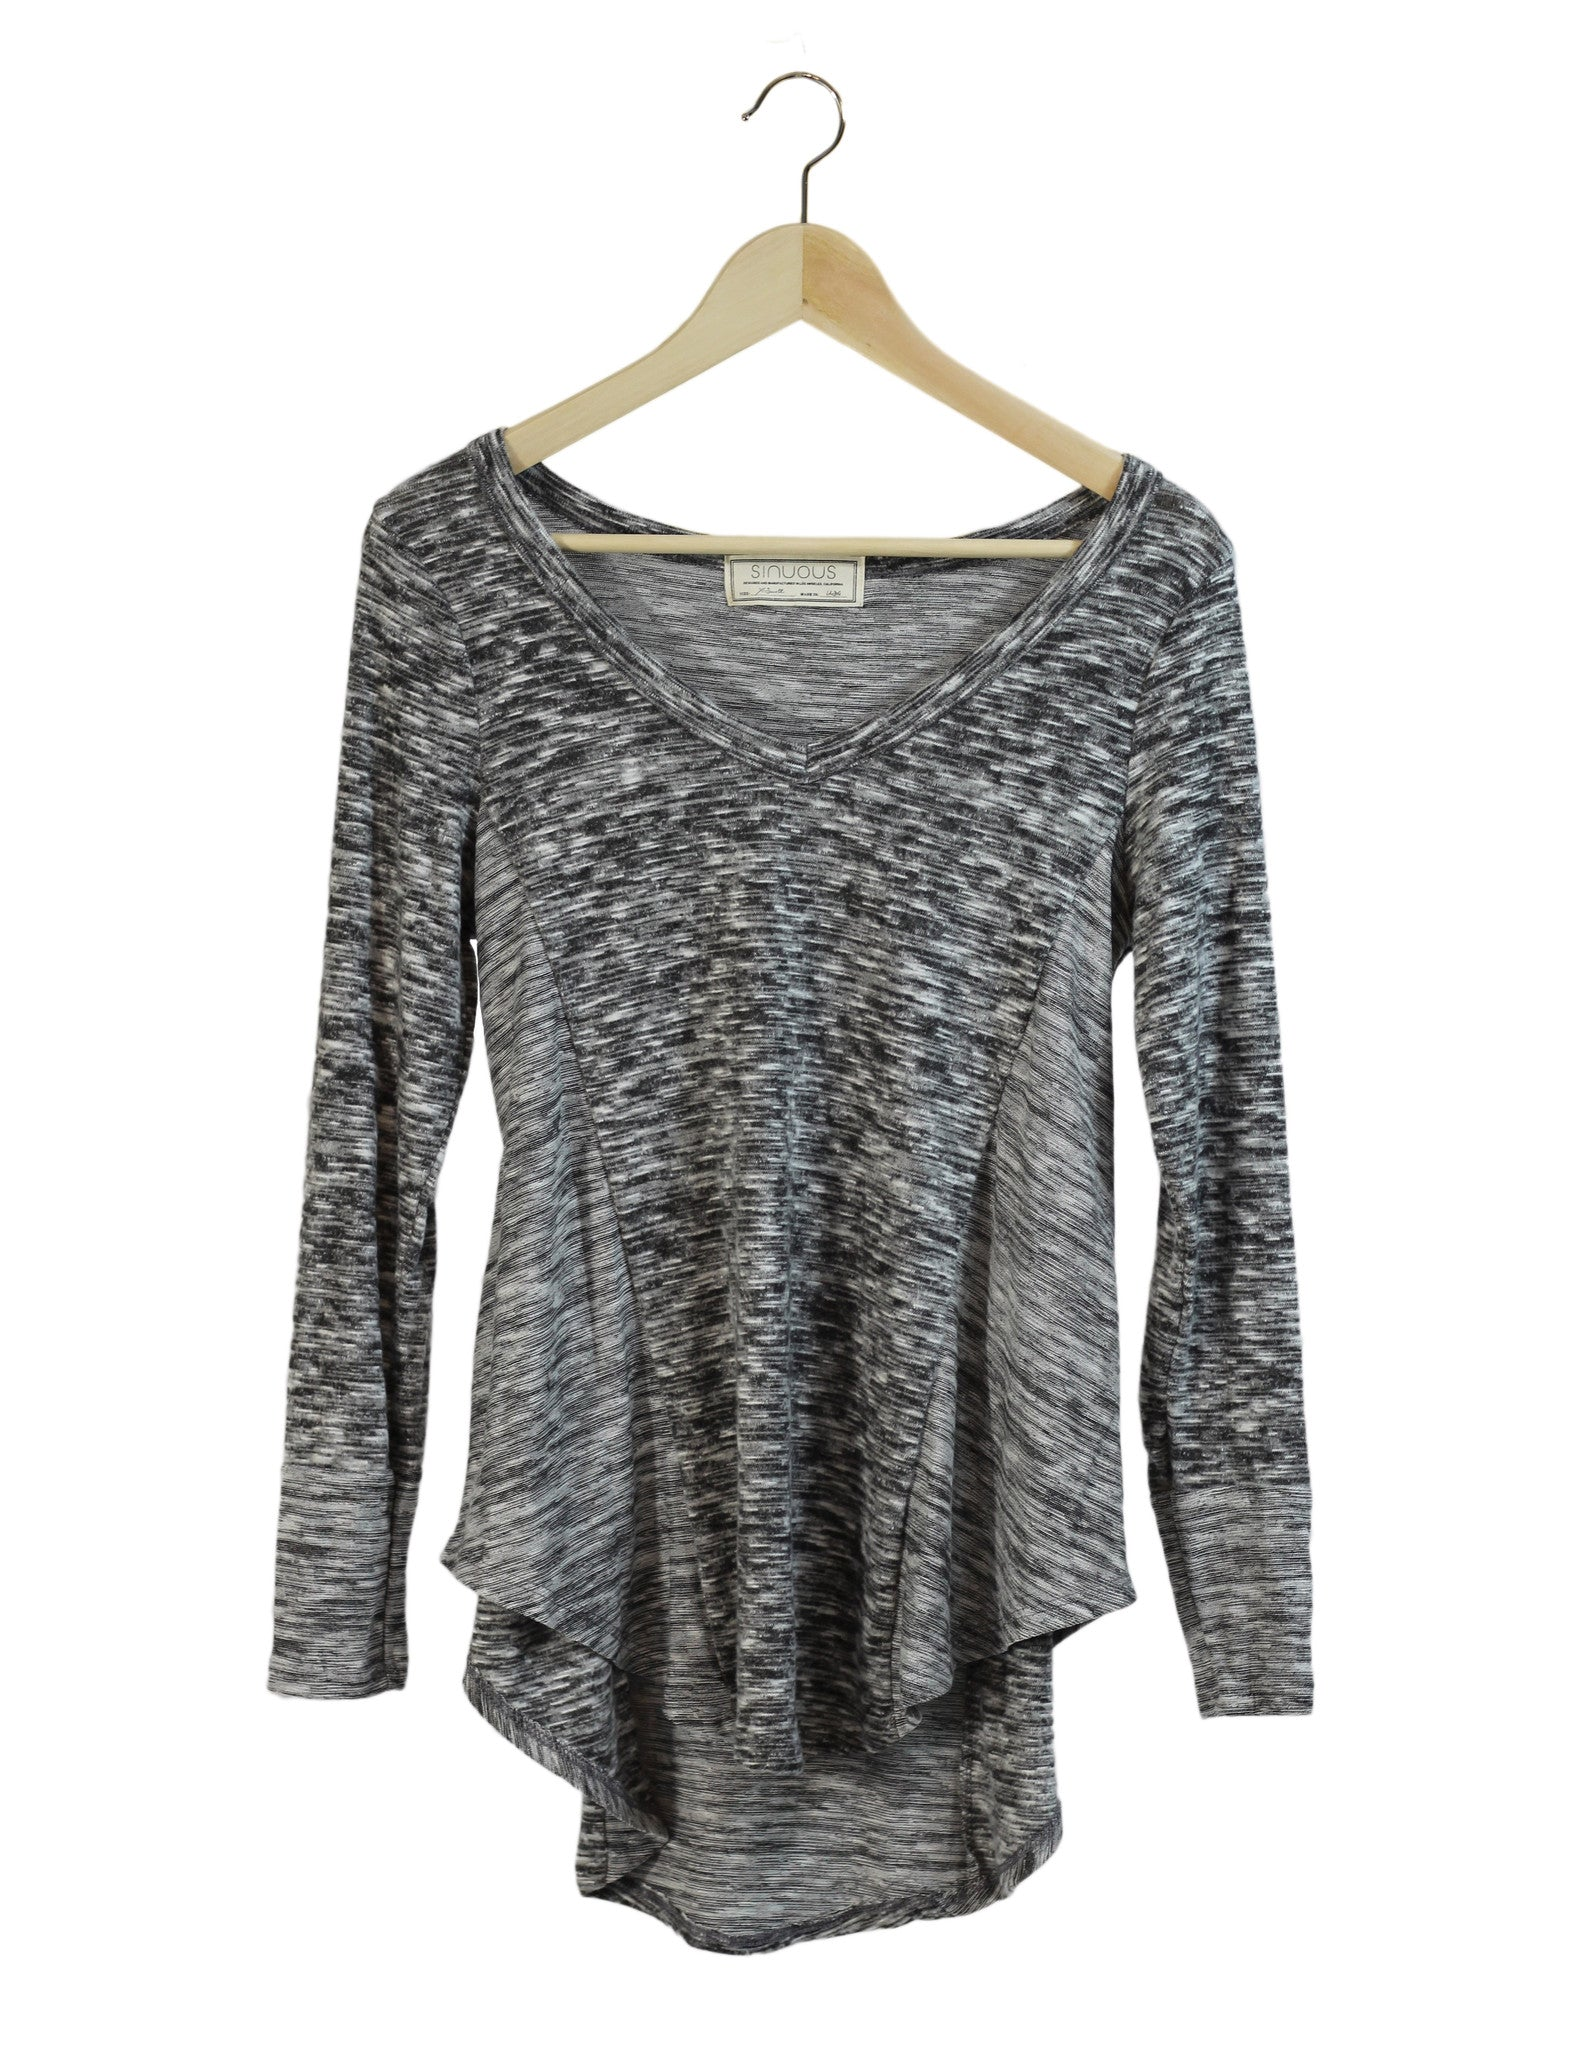 Brushed Grey V-Neck Top / Ethical Fashion